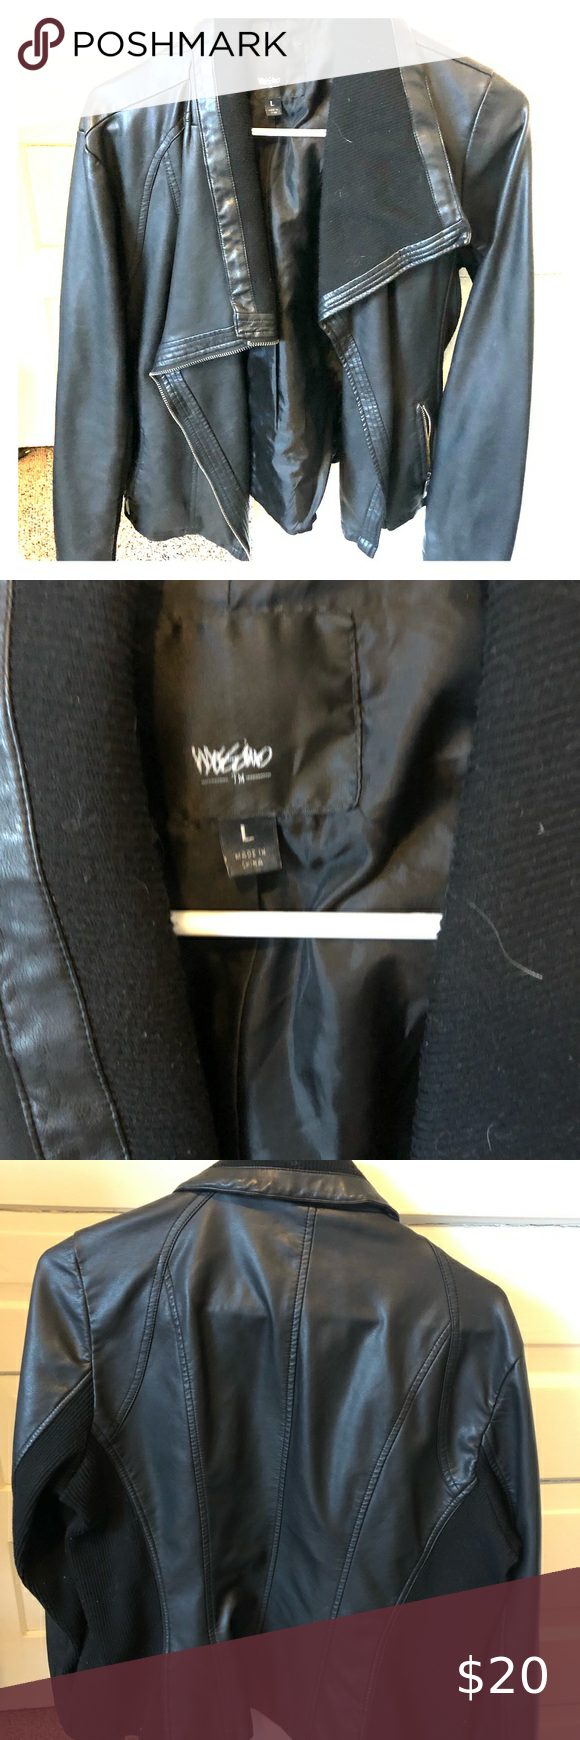 Mossimo Faux Leather Jacket Faux Leather Jacket With Black Side Stripe Like New Condition Target Jackets Coats Leather Jacket Faux Leather Jackets Jackets [ png ]